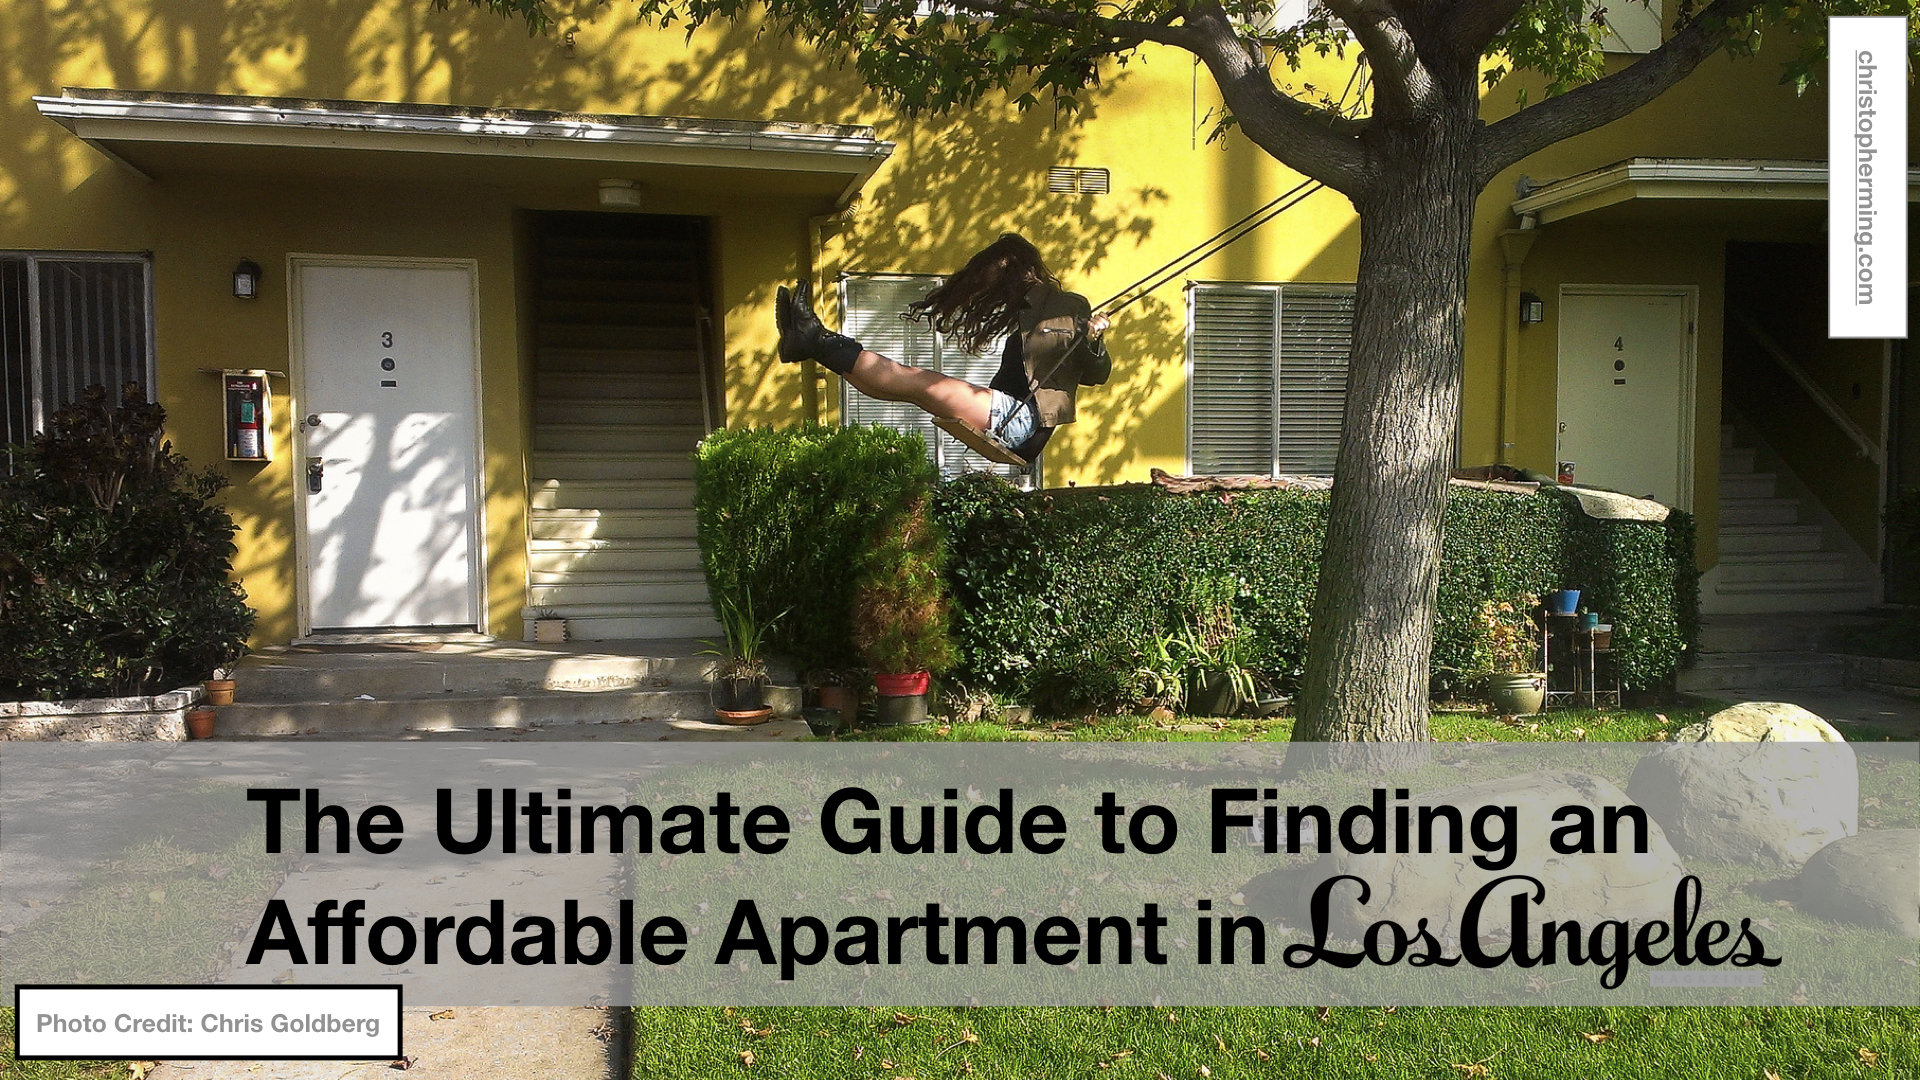 The Ultimate Guide to Finding an Affordable Apartment in Los